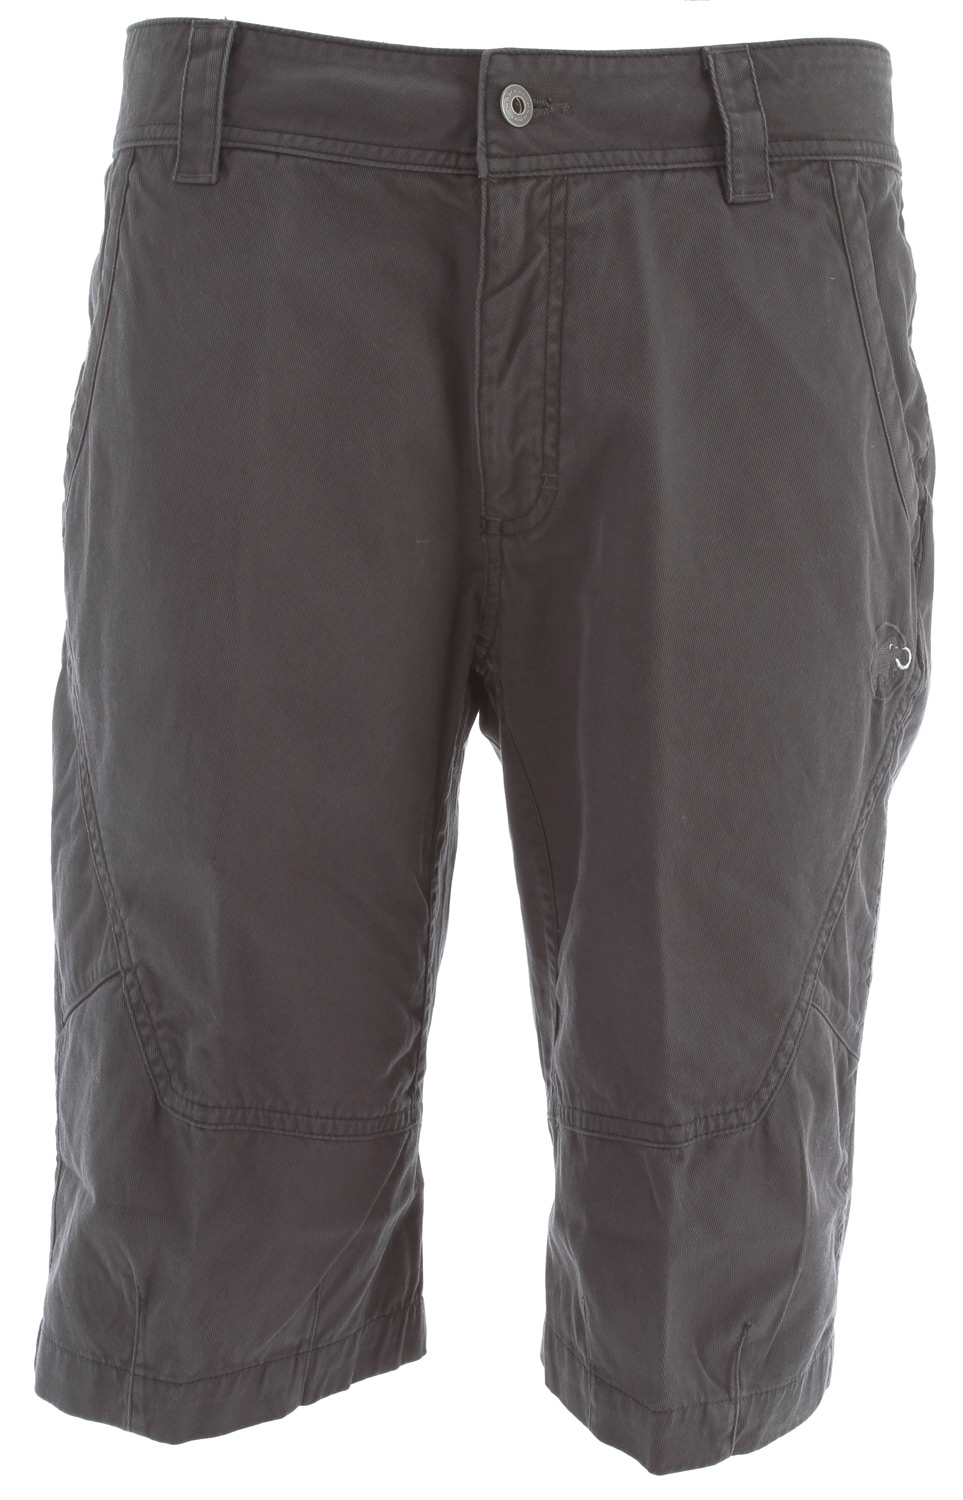 Camp and Hike One of the first two Mammut bioRe organic cotton climbing shorts for men. The Fusion is distinguished by reinforcement inserts at the knees and seat. It also has a small pocket for a mobile phone and the wide cut and gusseted crotch ensure good freedom of movement.Key Features of the Mammut Fusion Short: bioRe® Organic Cotton 2 front pockets 2 seat pockets 1 small mobile phone pocket on the side Chalk bag attachment on back of waist band Wide, loose cargo cut Robust and abrasion proof cotton fabric Vintage look Optimally suitable for: Multipitch Rockclimbing, Sportsclimbing, Bouldering / Urban Climbing Suitable for: Via Ferrata, Travel, Mountain Hiking, Gym Climbing Regular Fit - $68.95